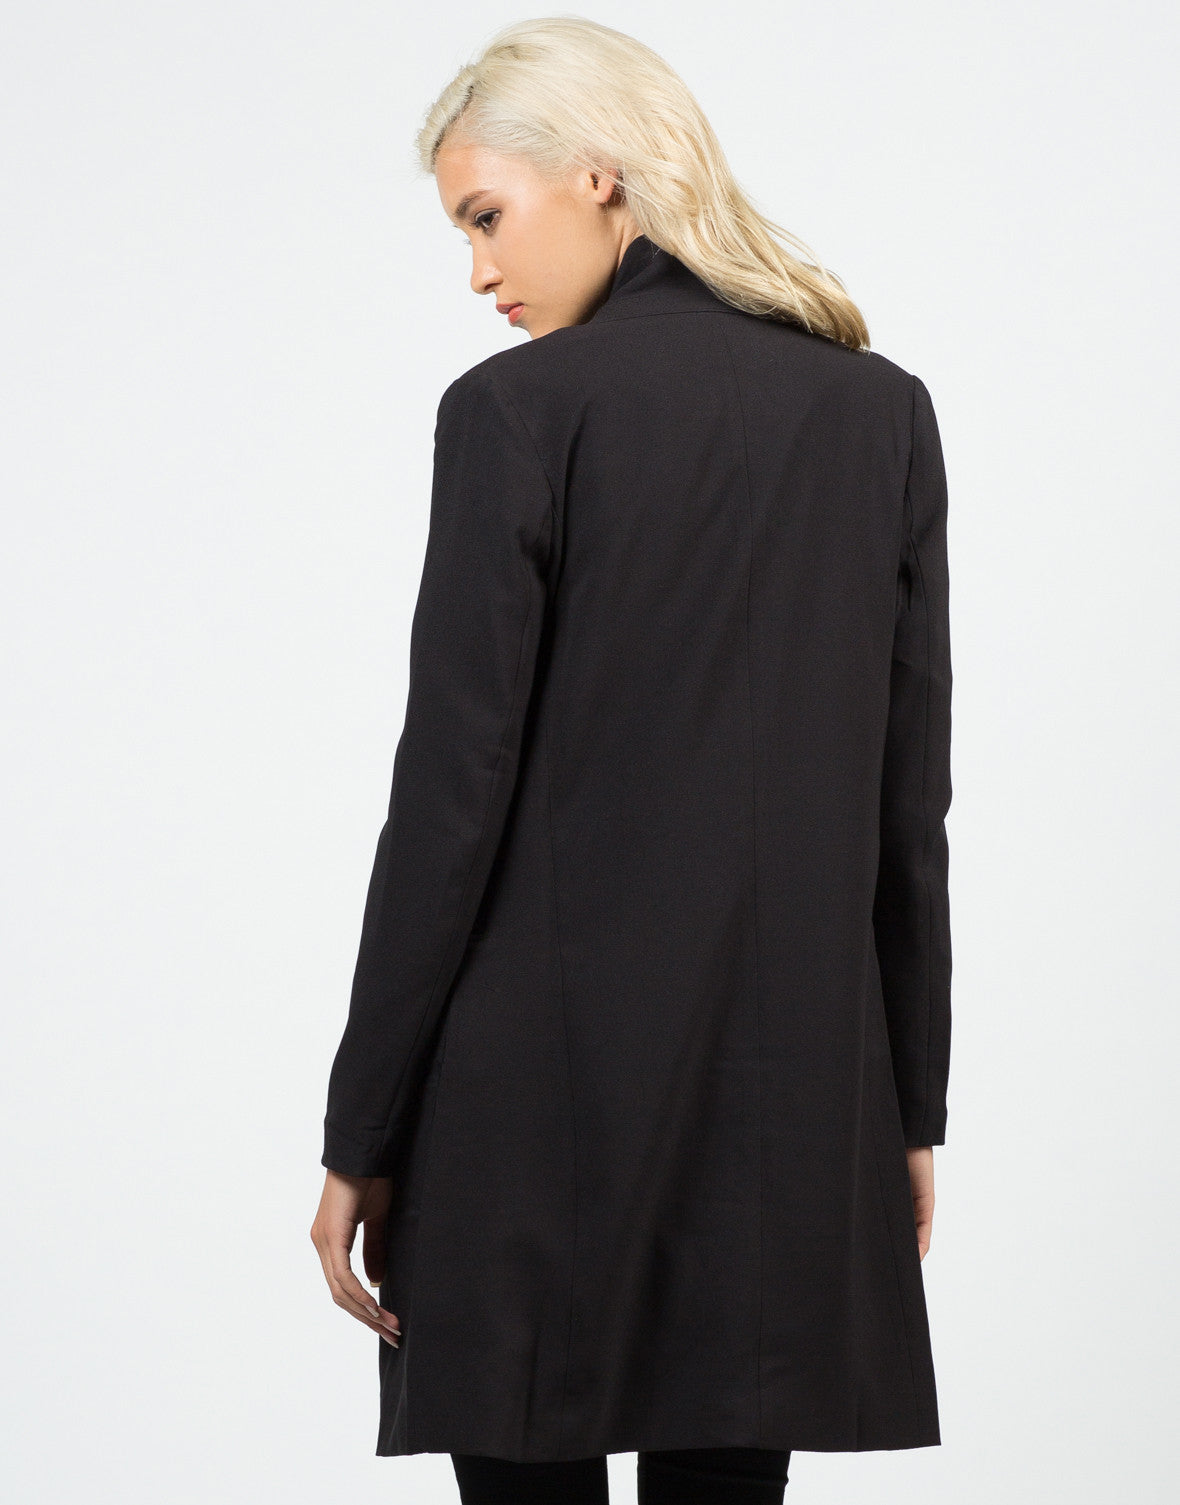 Back View of Buttoned Long Blazer Jacket